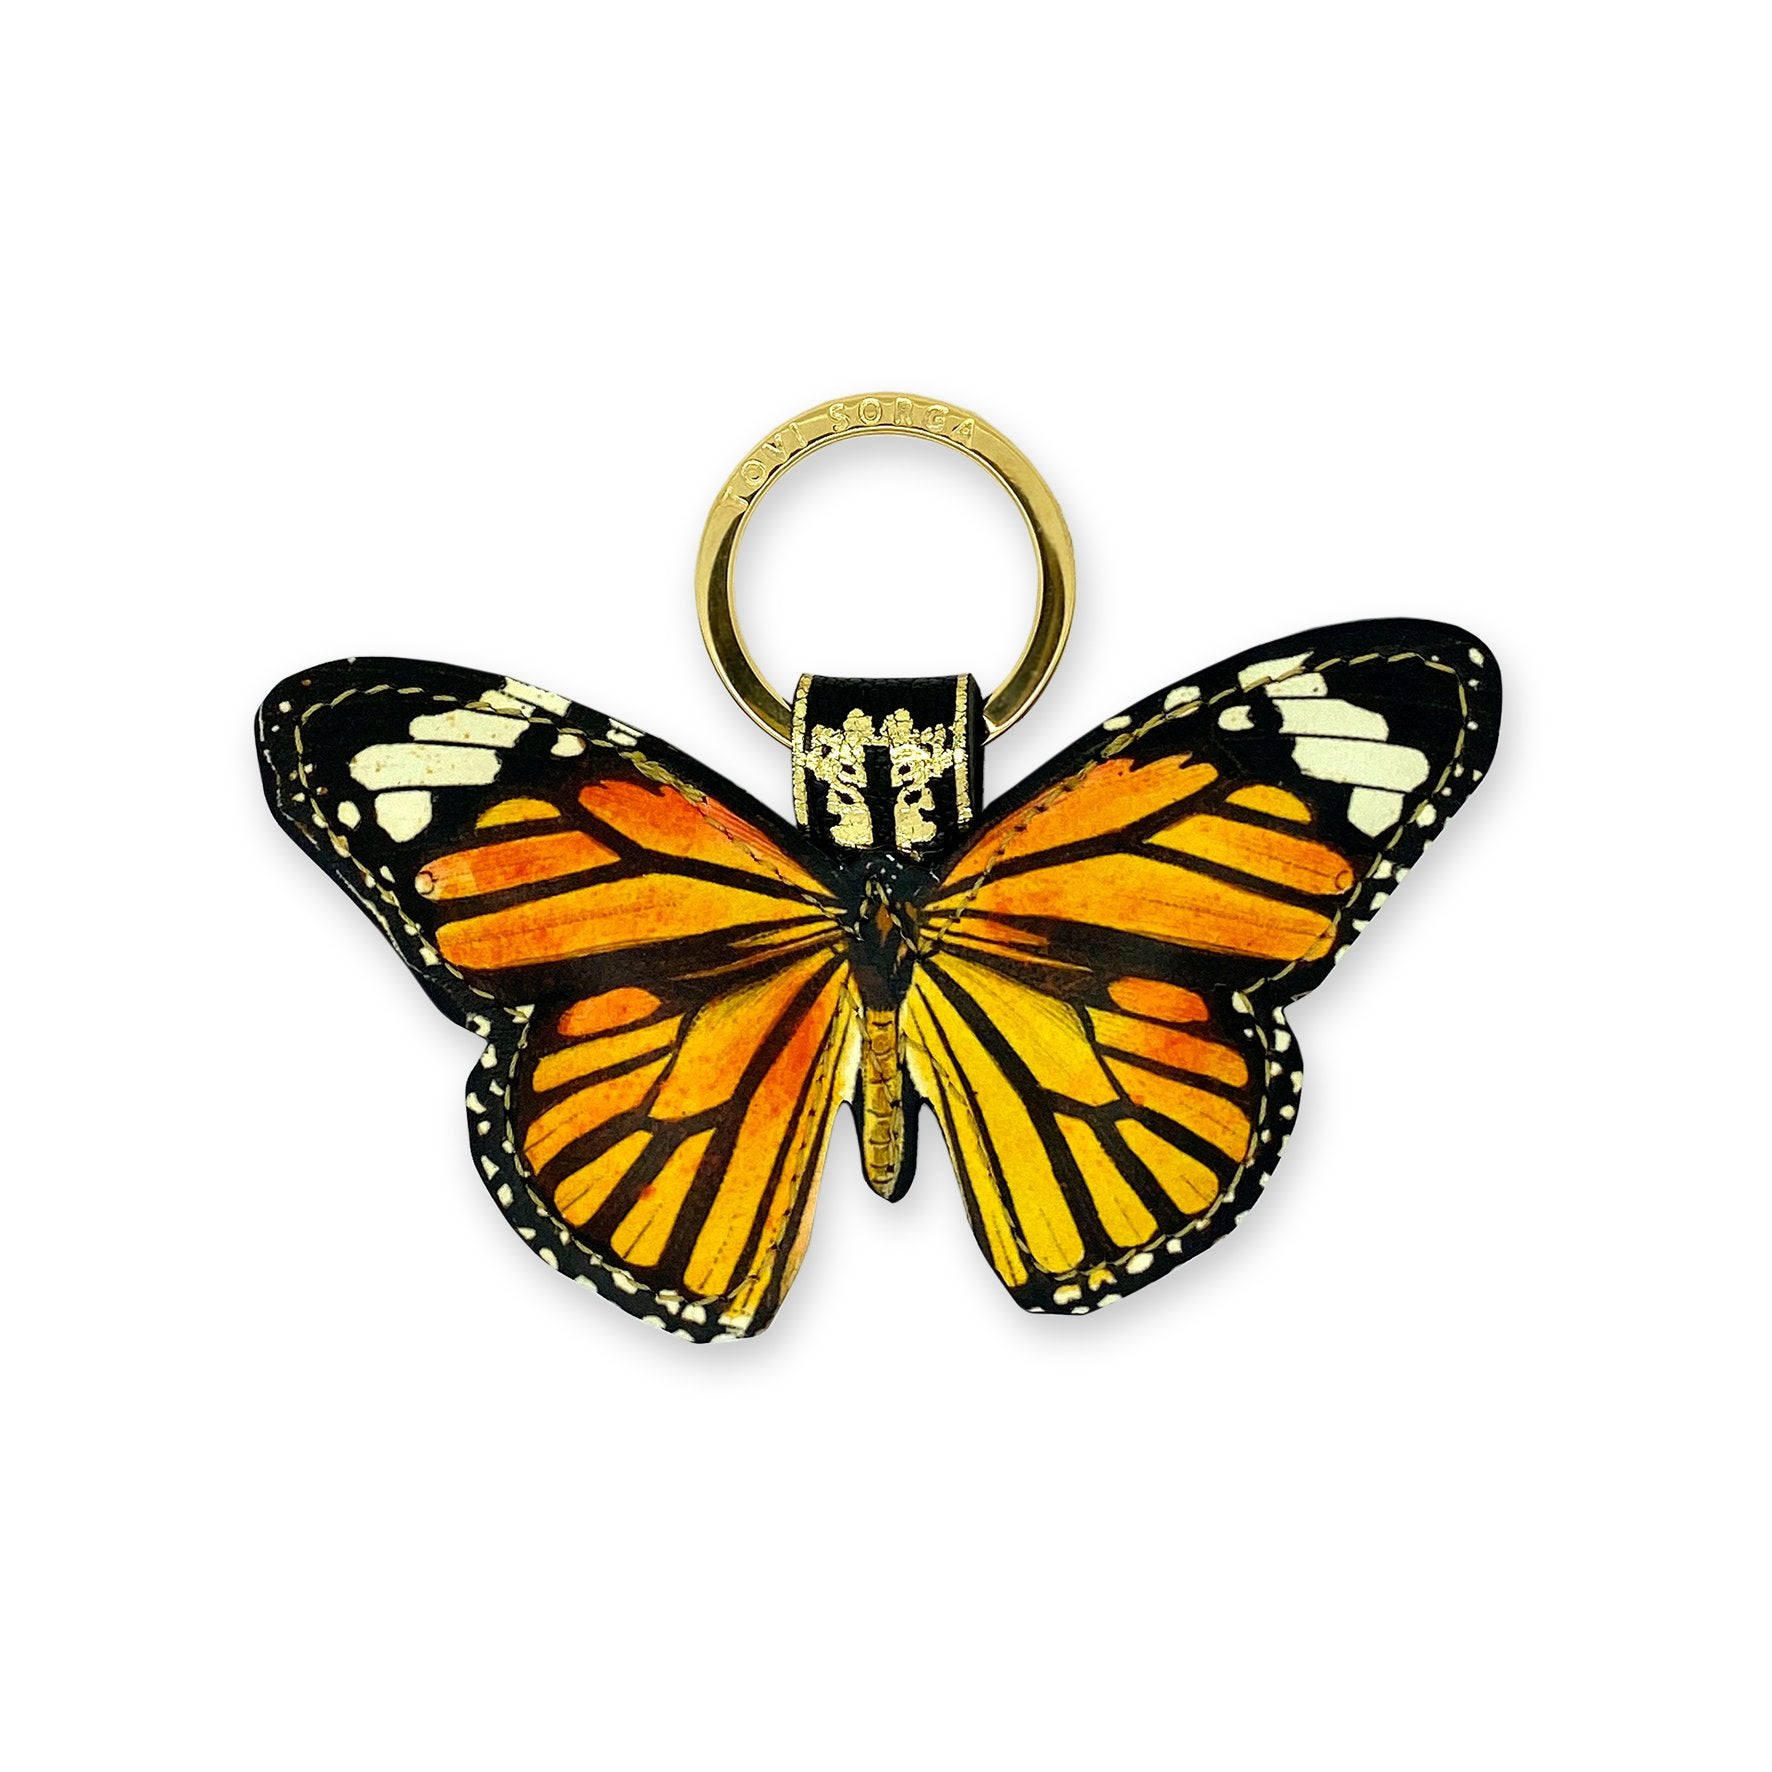 Leather Key Ring / Bag Charm - Monarch Butterfly Key Ring / Bag Charm Tovi Sorga